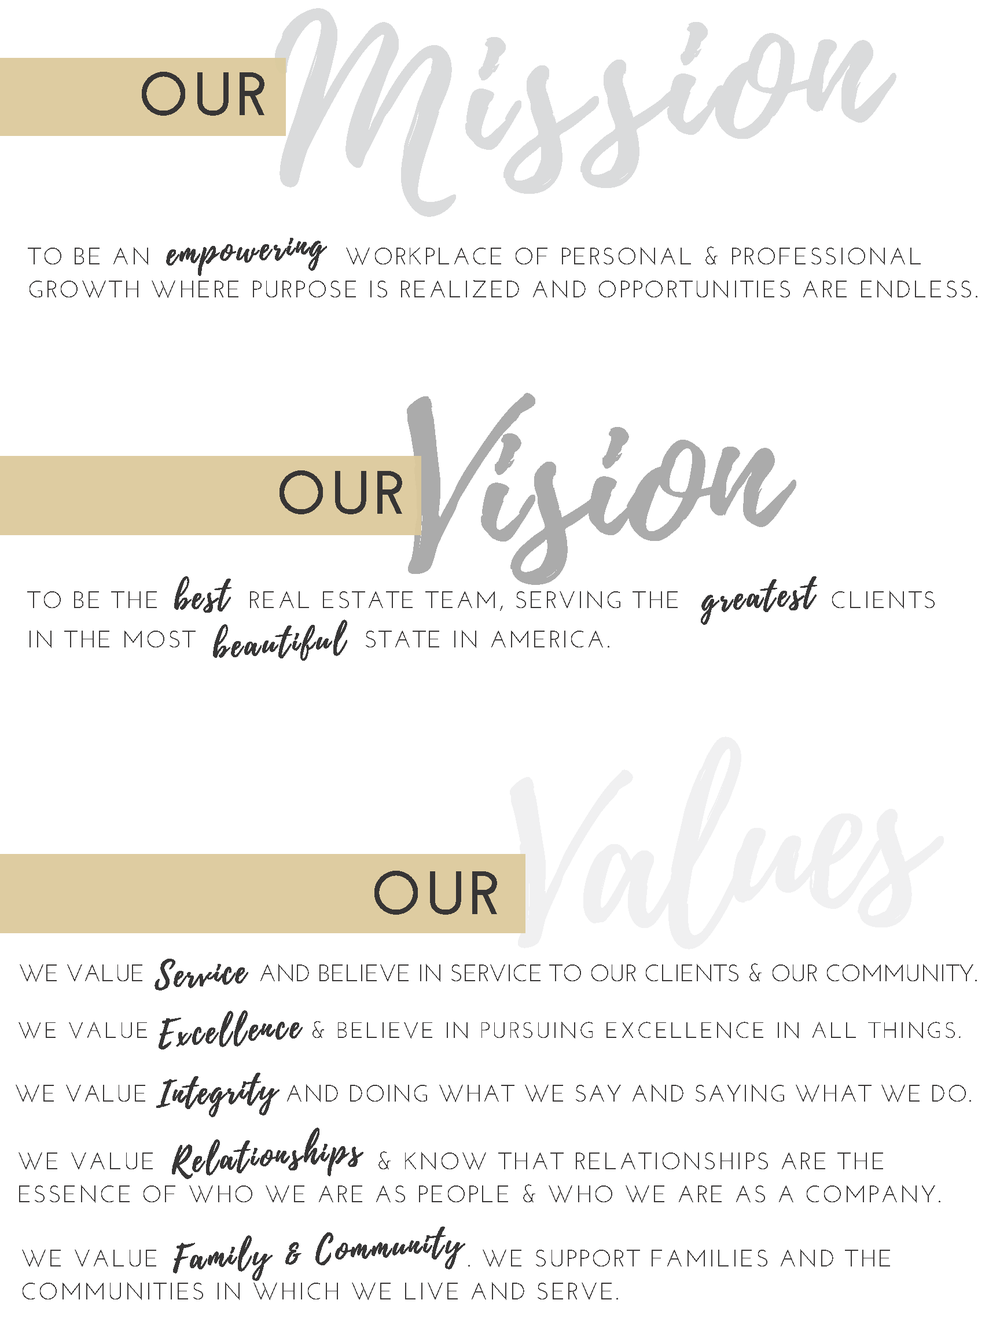 Mission, Vision & Values (2)_96 dpi.png